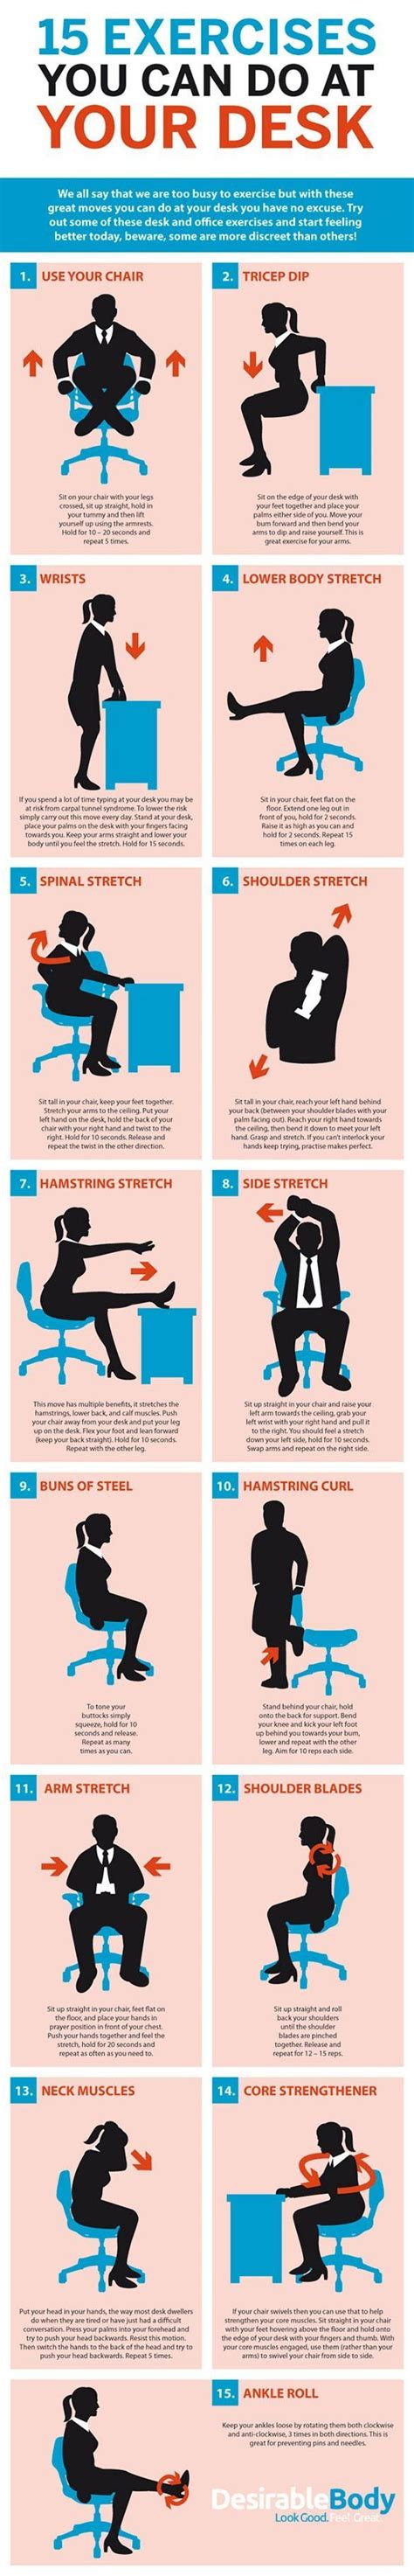 exercises to do at your desk 11 best office desk exercises images on pinterest